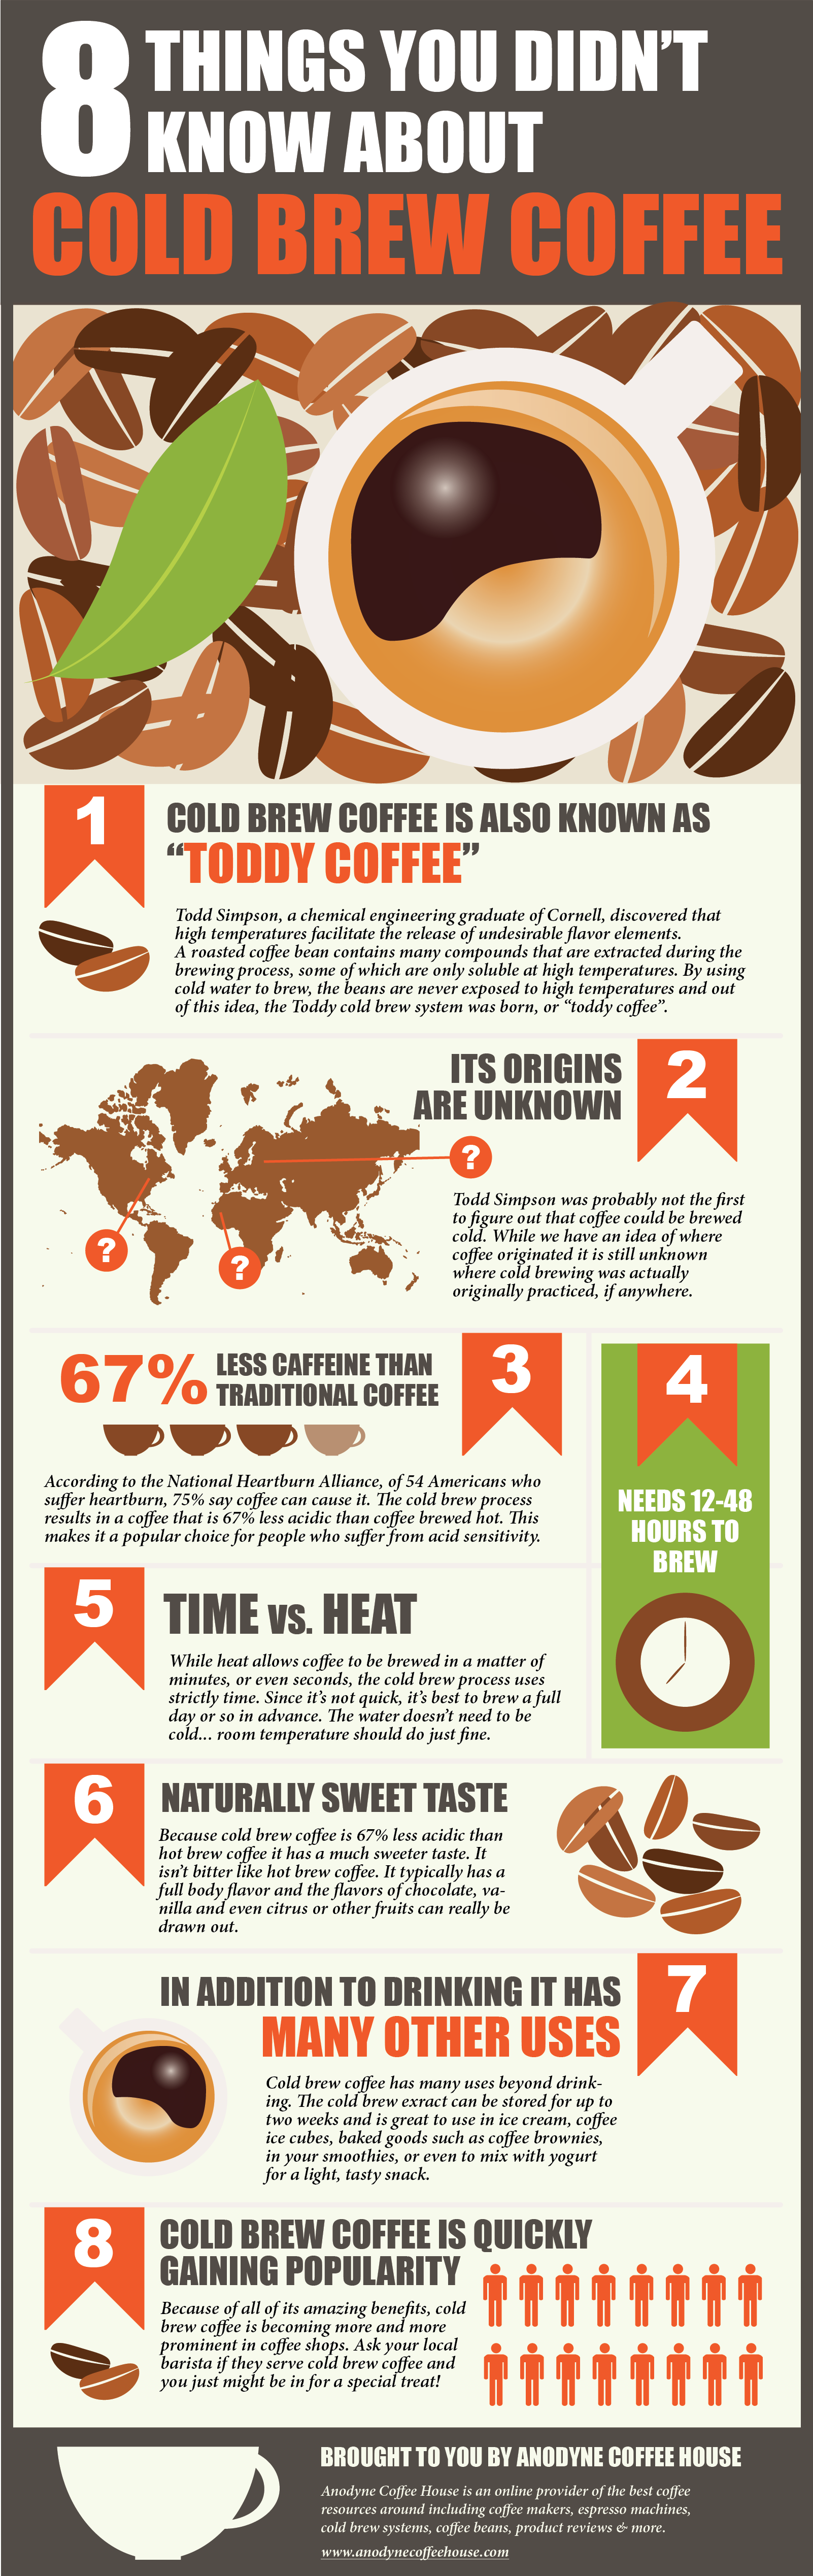 Eight Awesome Things You May Not Have Known About Cold Brewed Coffee